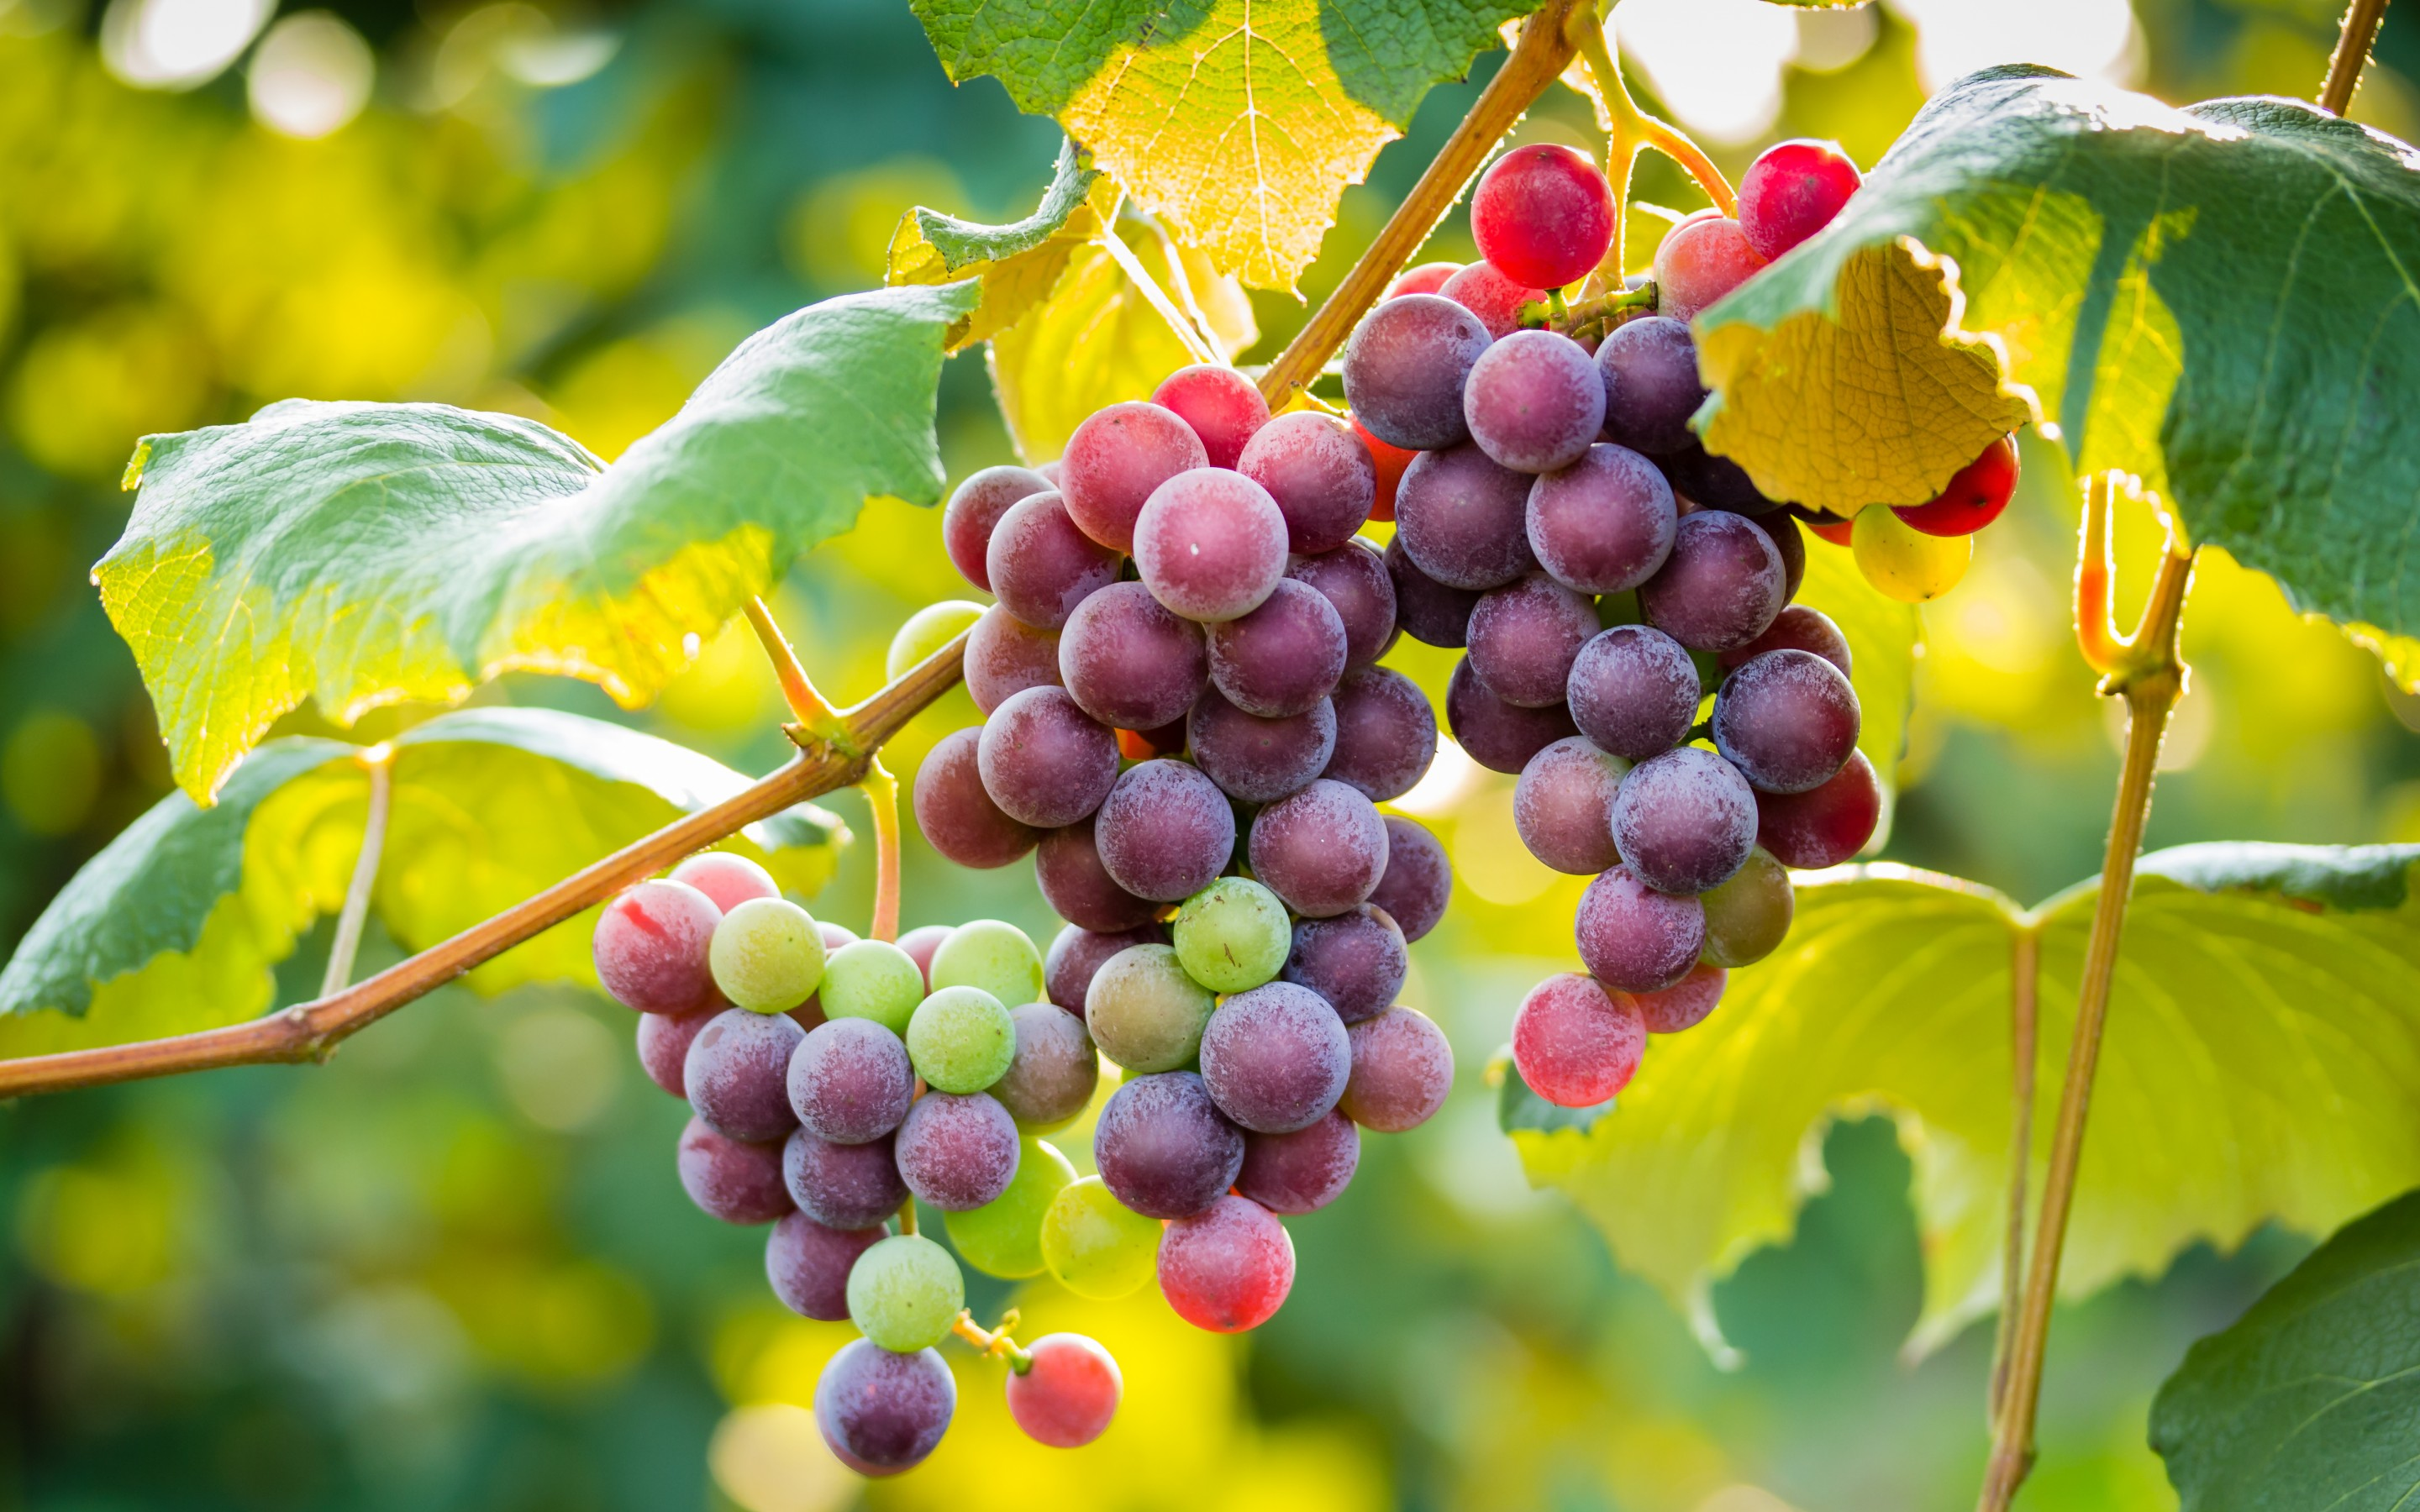 45 Best HD Walls of Grapes HDQ Grapes Wallpapers 2880x1800